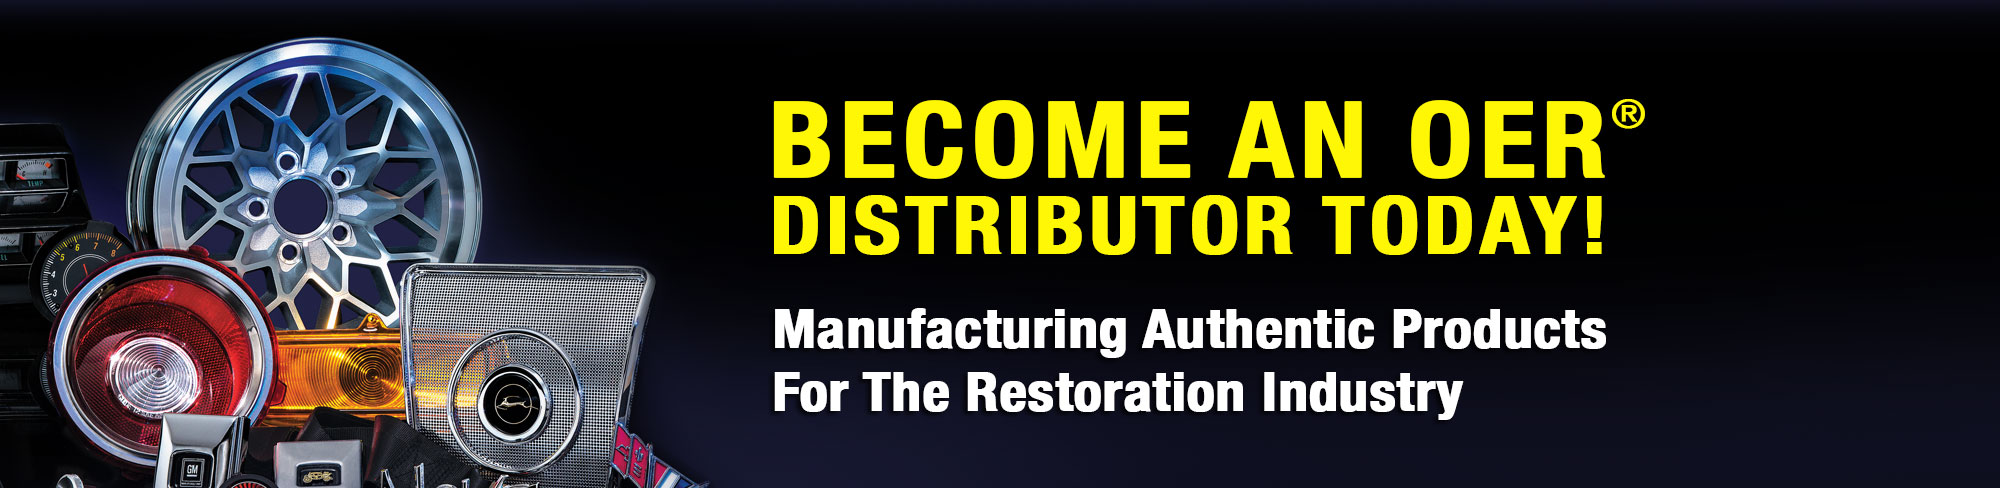 Become An OER Distributor Today!